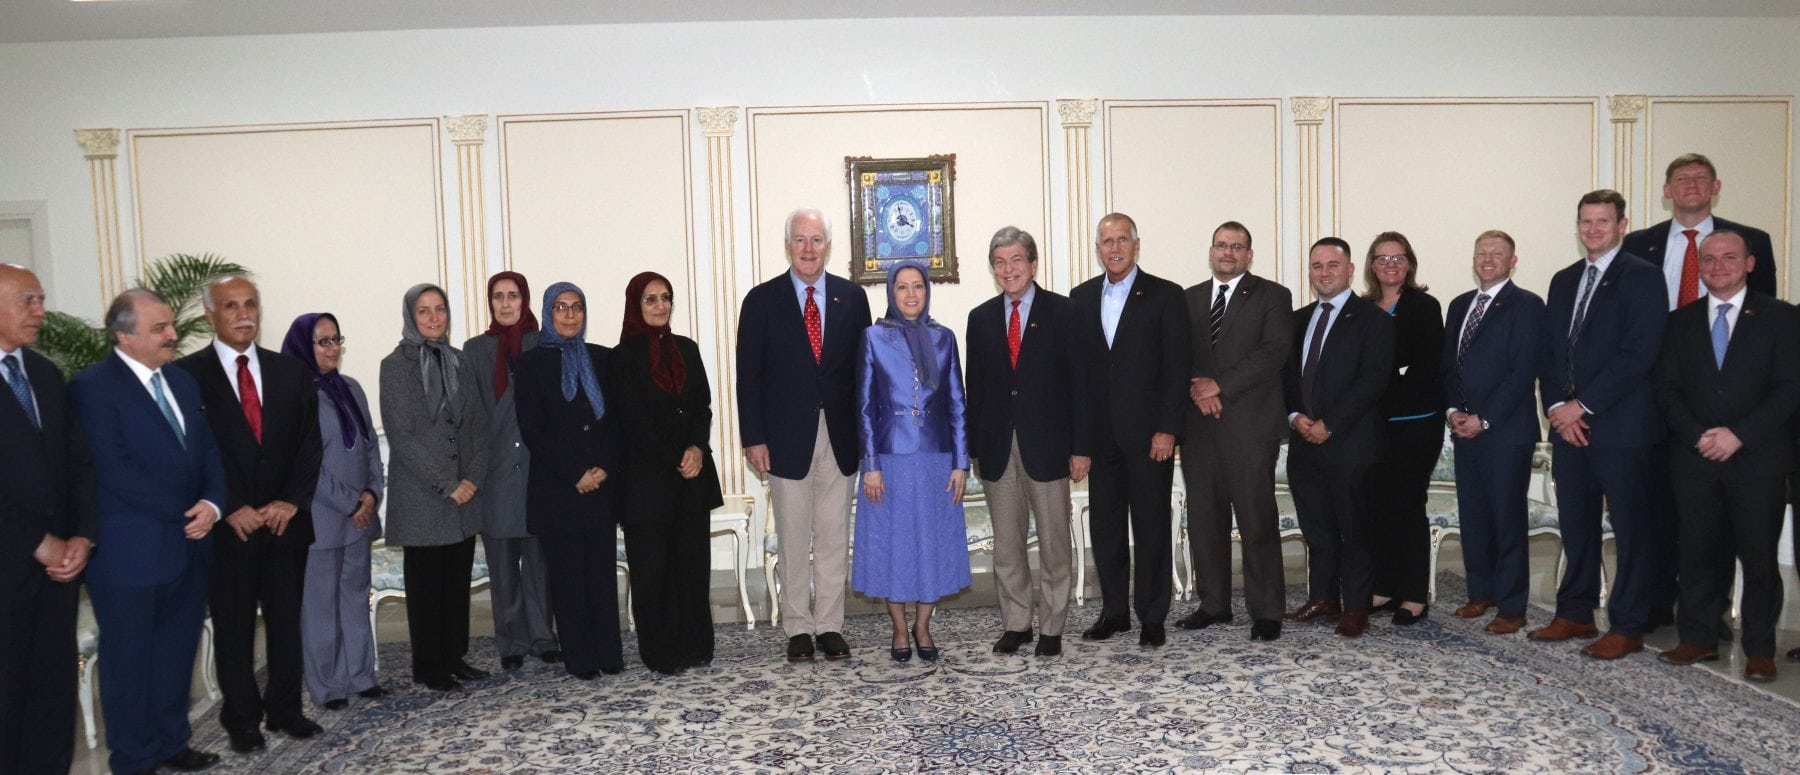 Ms. Maryam Rajavi met with Senior U.S. Senate members in Albania to discuss the current situation in Iran and the Middle East.